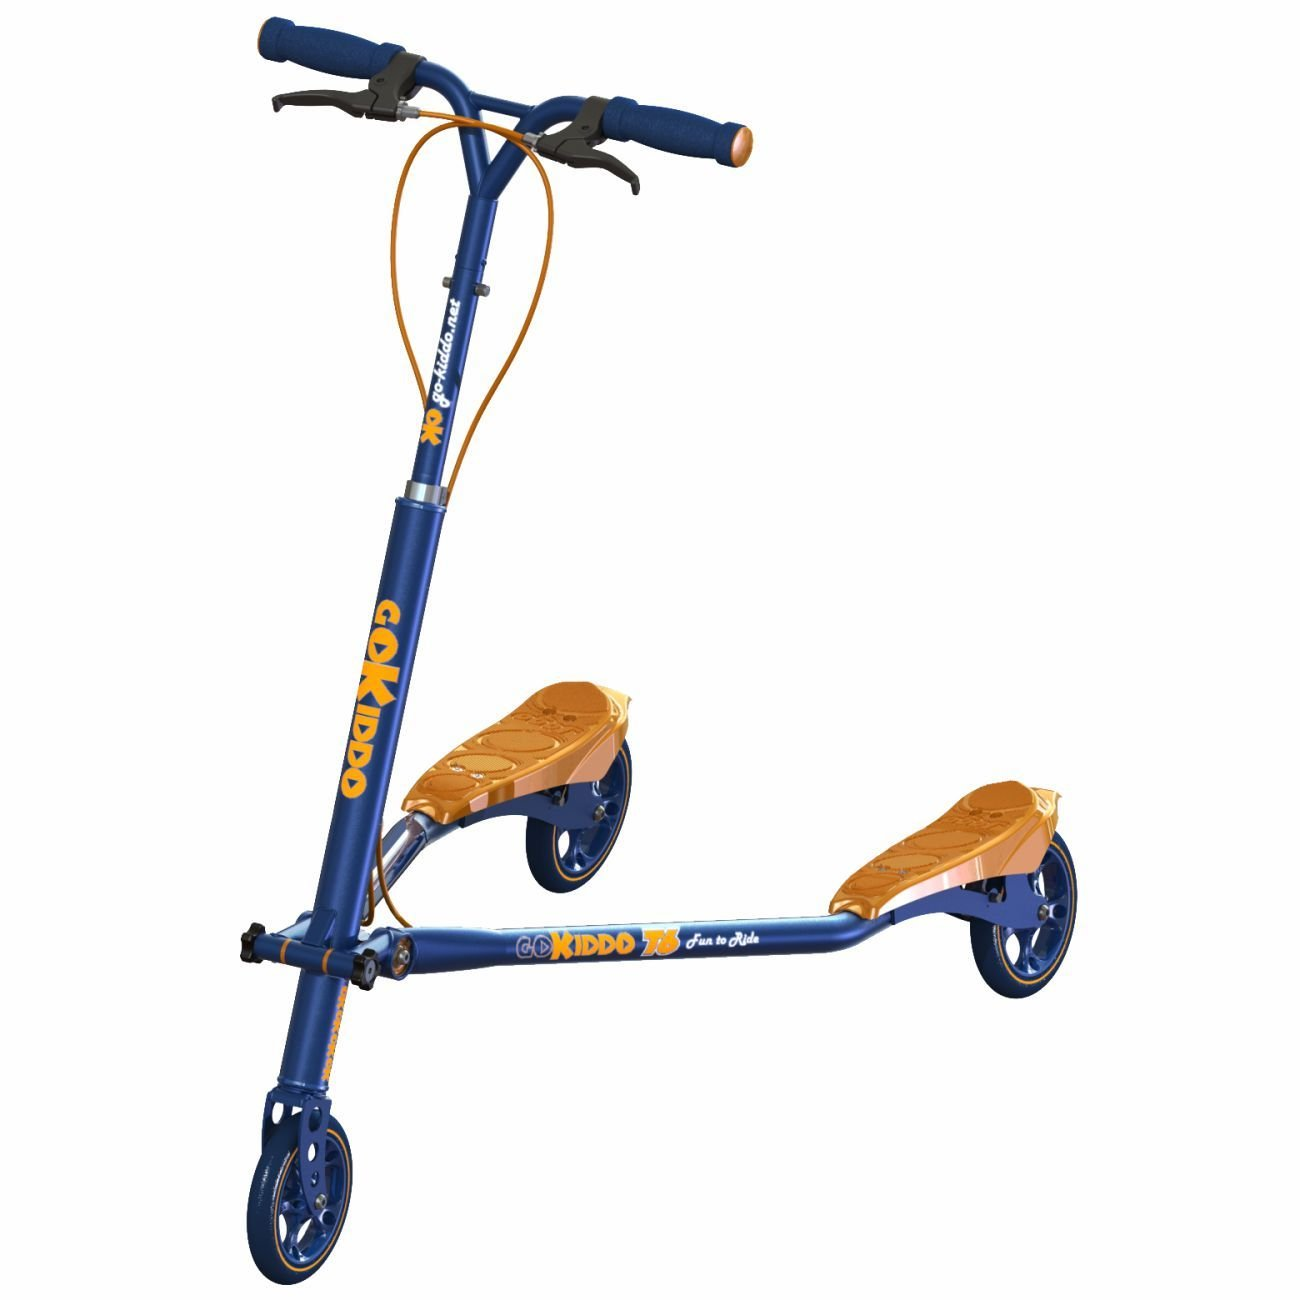 Go-Kiddo T6 Carving Scooter, Purple GK-T6-PP